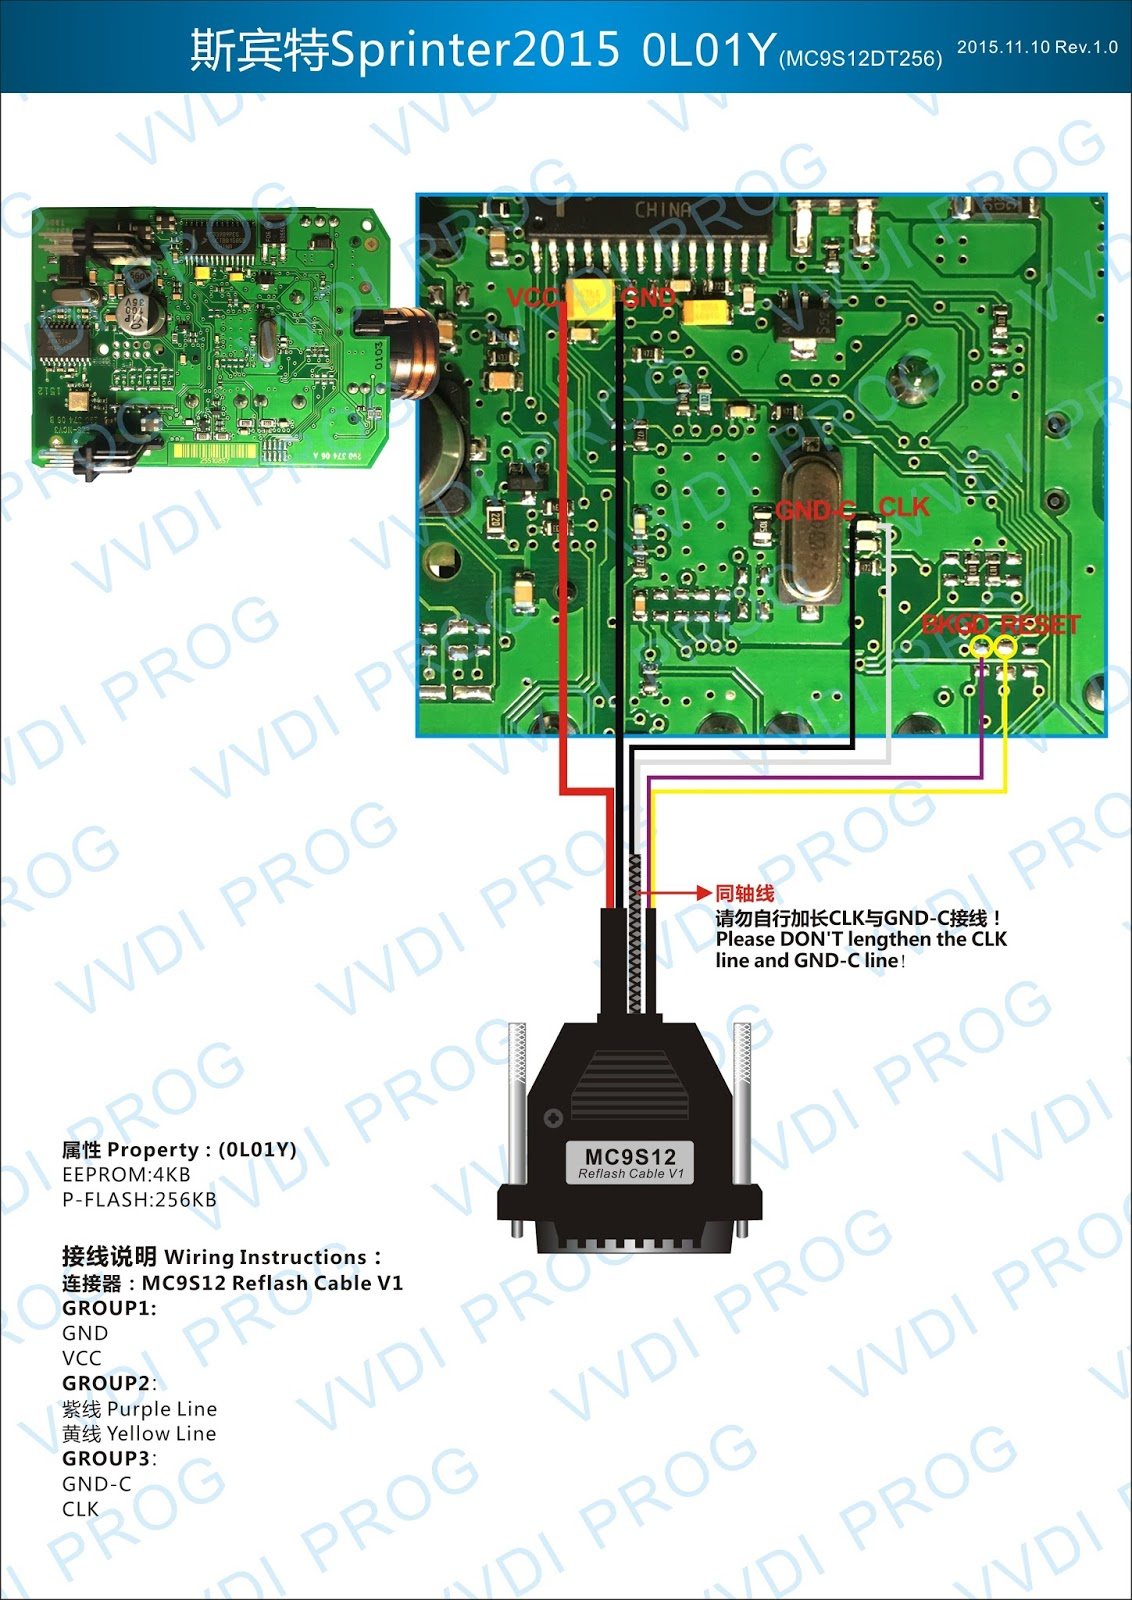 Obd port moreover lexus es obd connector location on car diagnostic - Obd Port Moreover Lexus Es Obd Connector Location On Car Diagnostic 34